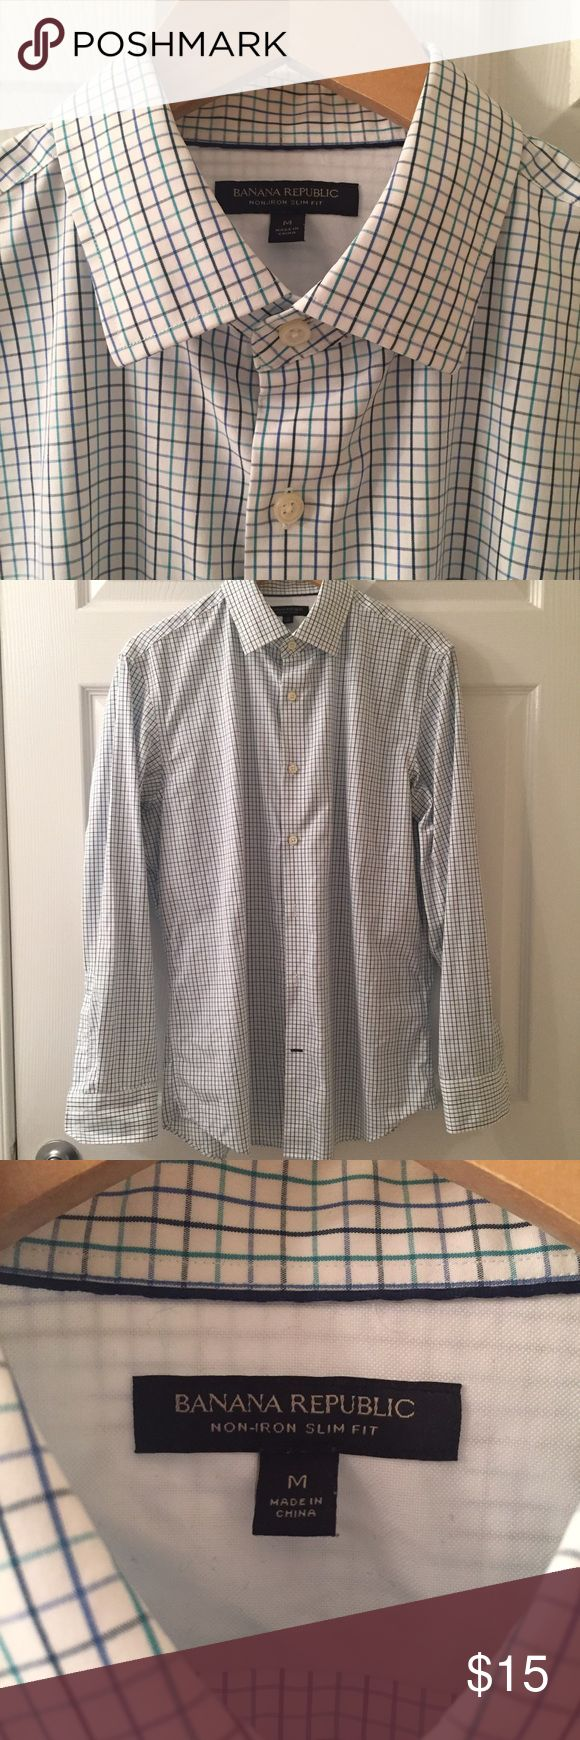 Banana Republic non-iron slim fit dress shirt Size medium, non-iron slim fit dress shirt. In great condition, comes with collar stays Banana Republic Shirts Dress Shirts